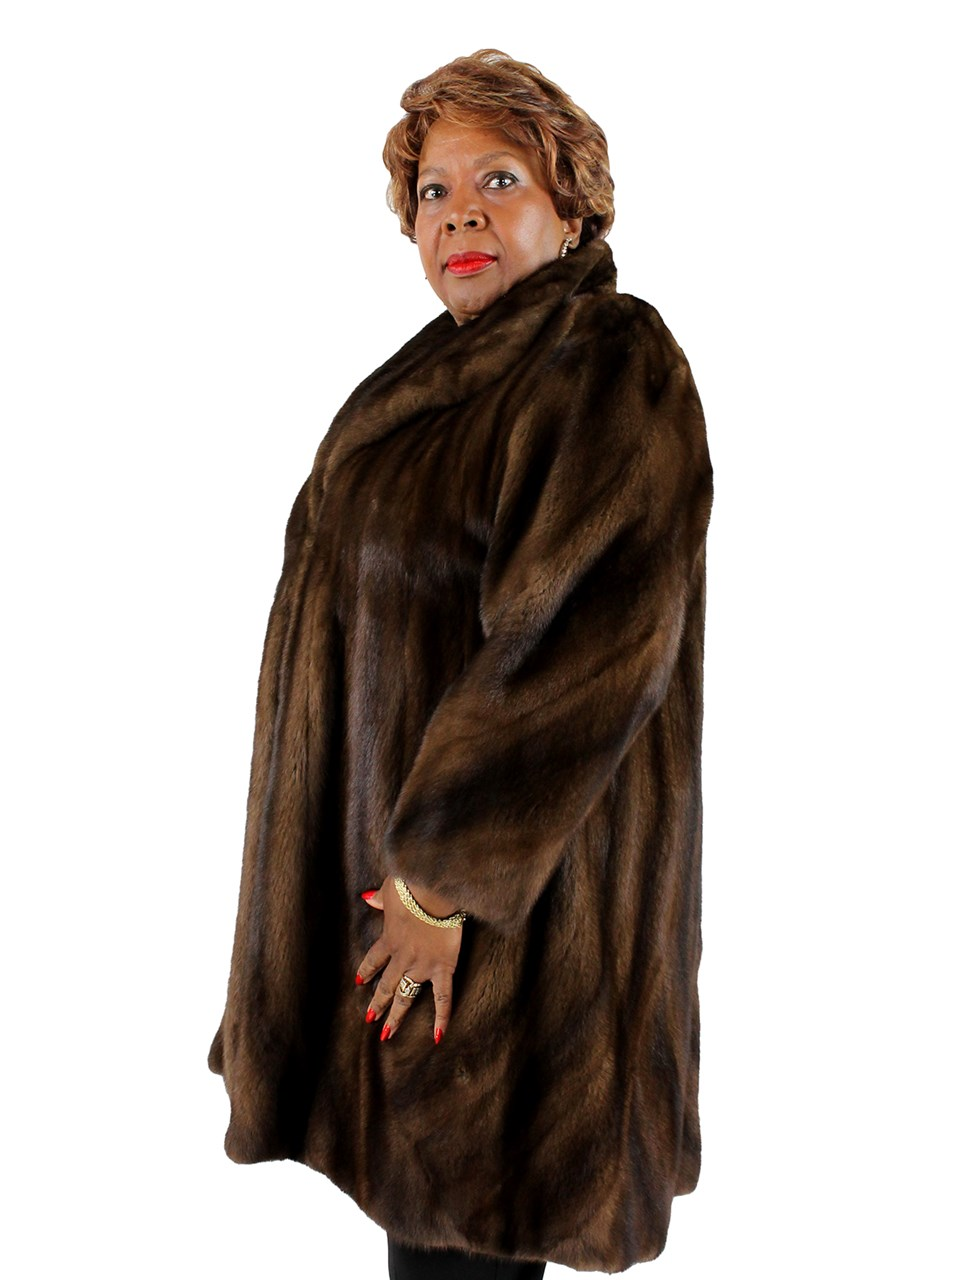 Demibuff Female Mink Coat with Direction Body